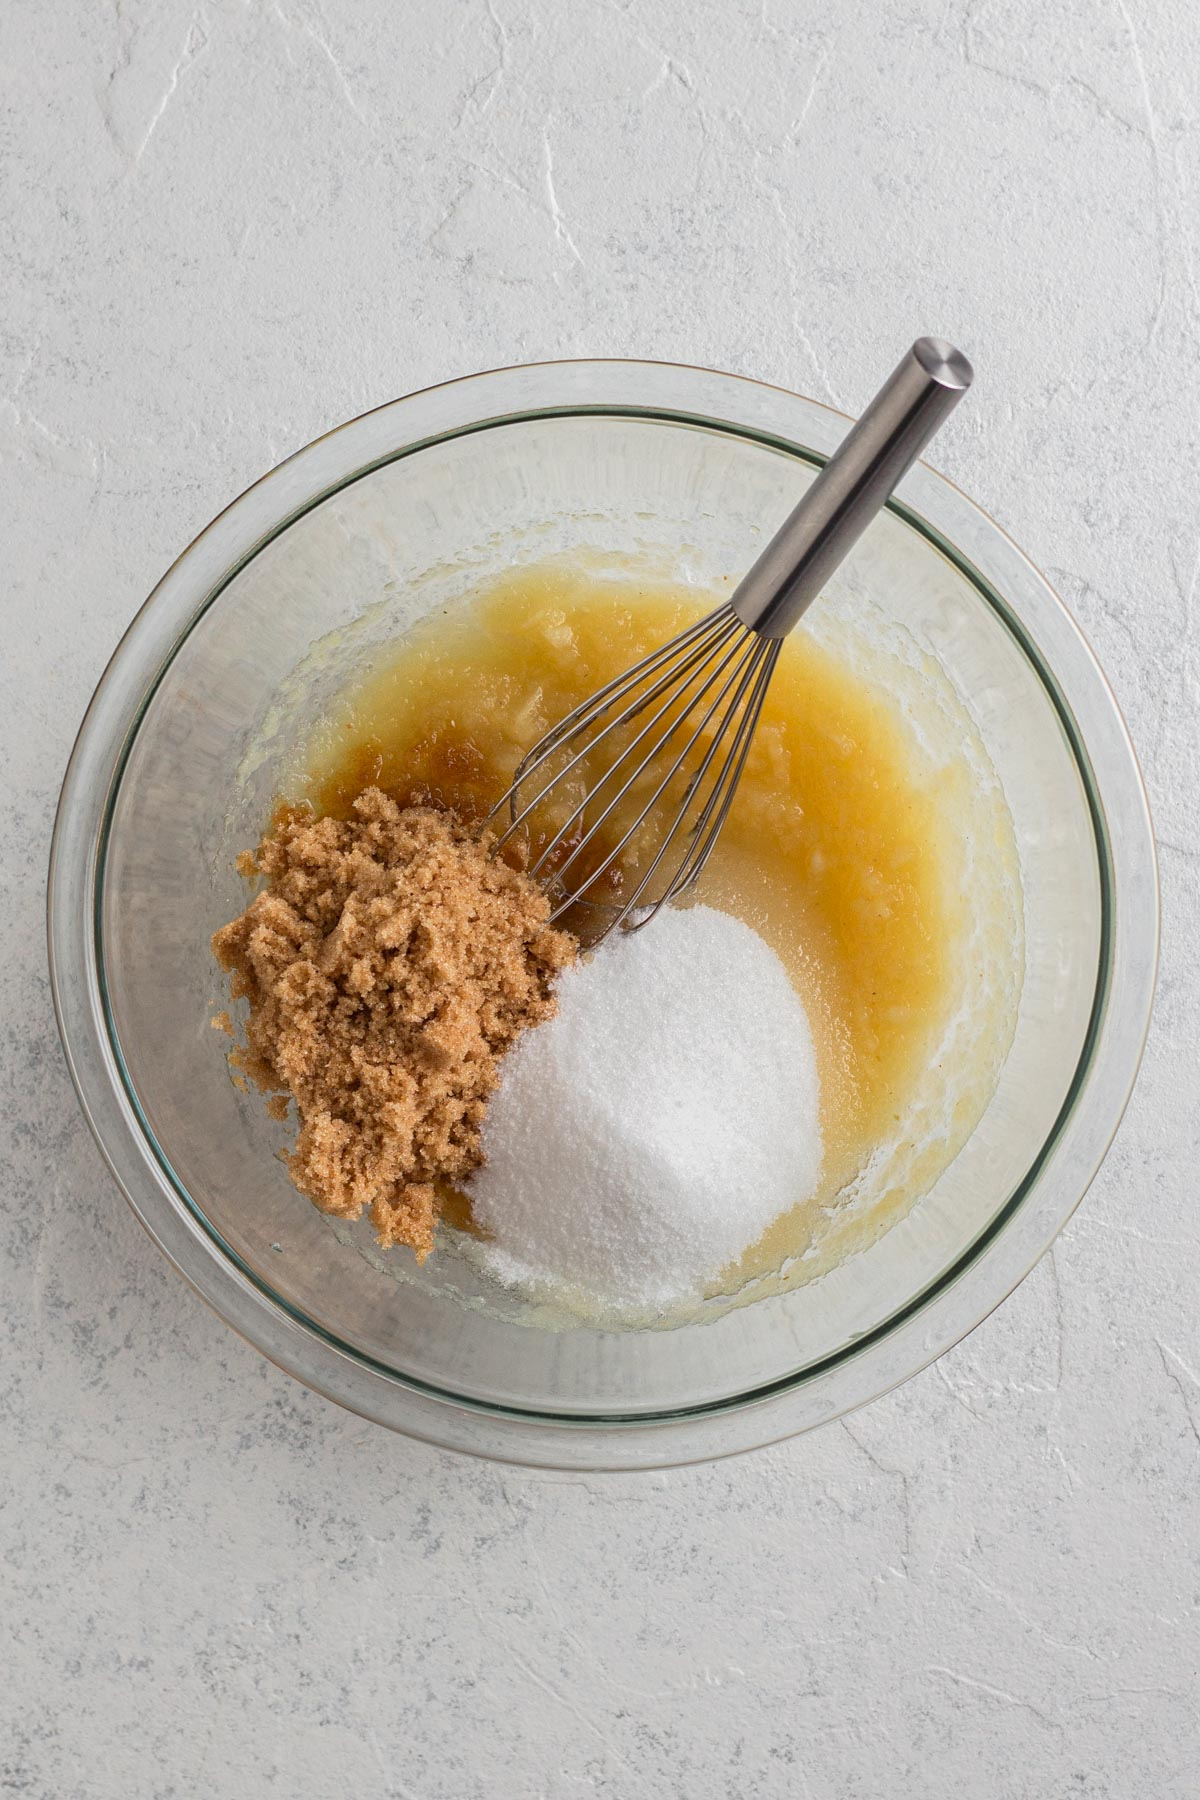 applesauce and sugars in a glass bowl with a whisk